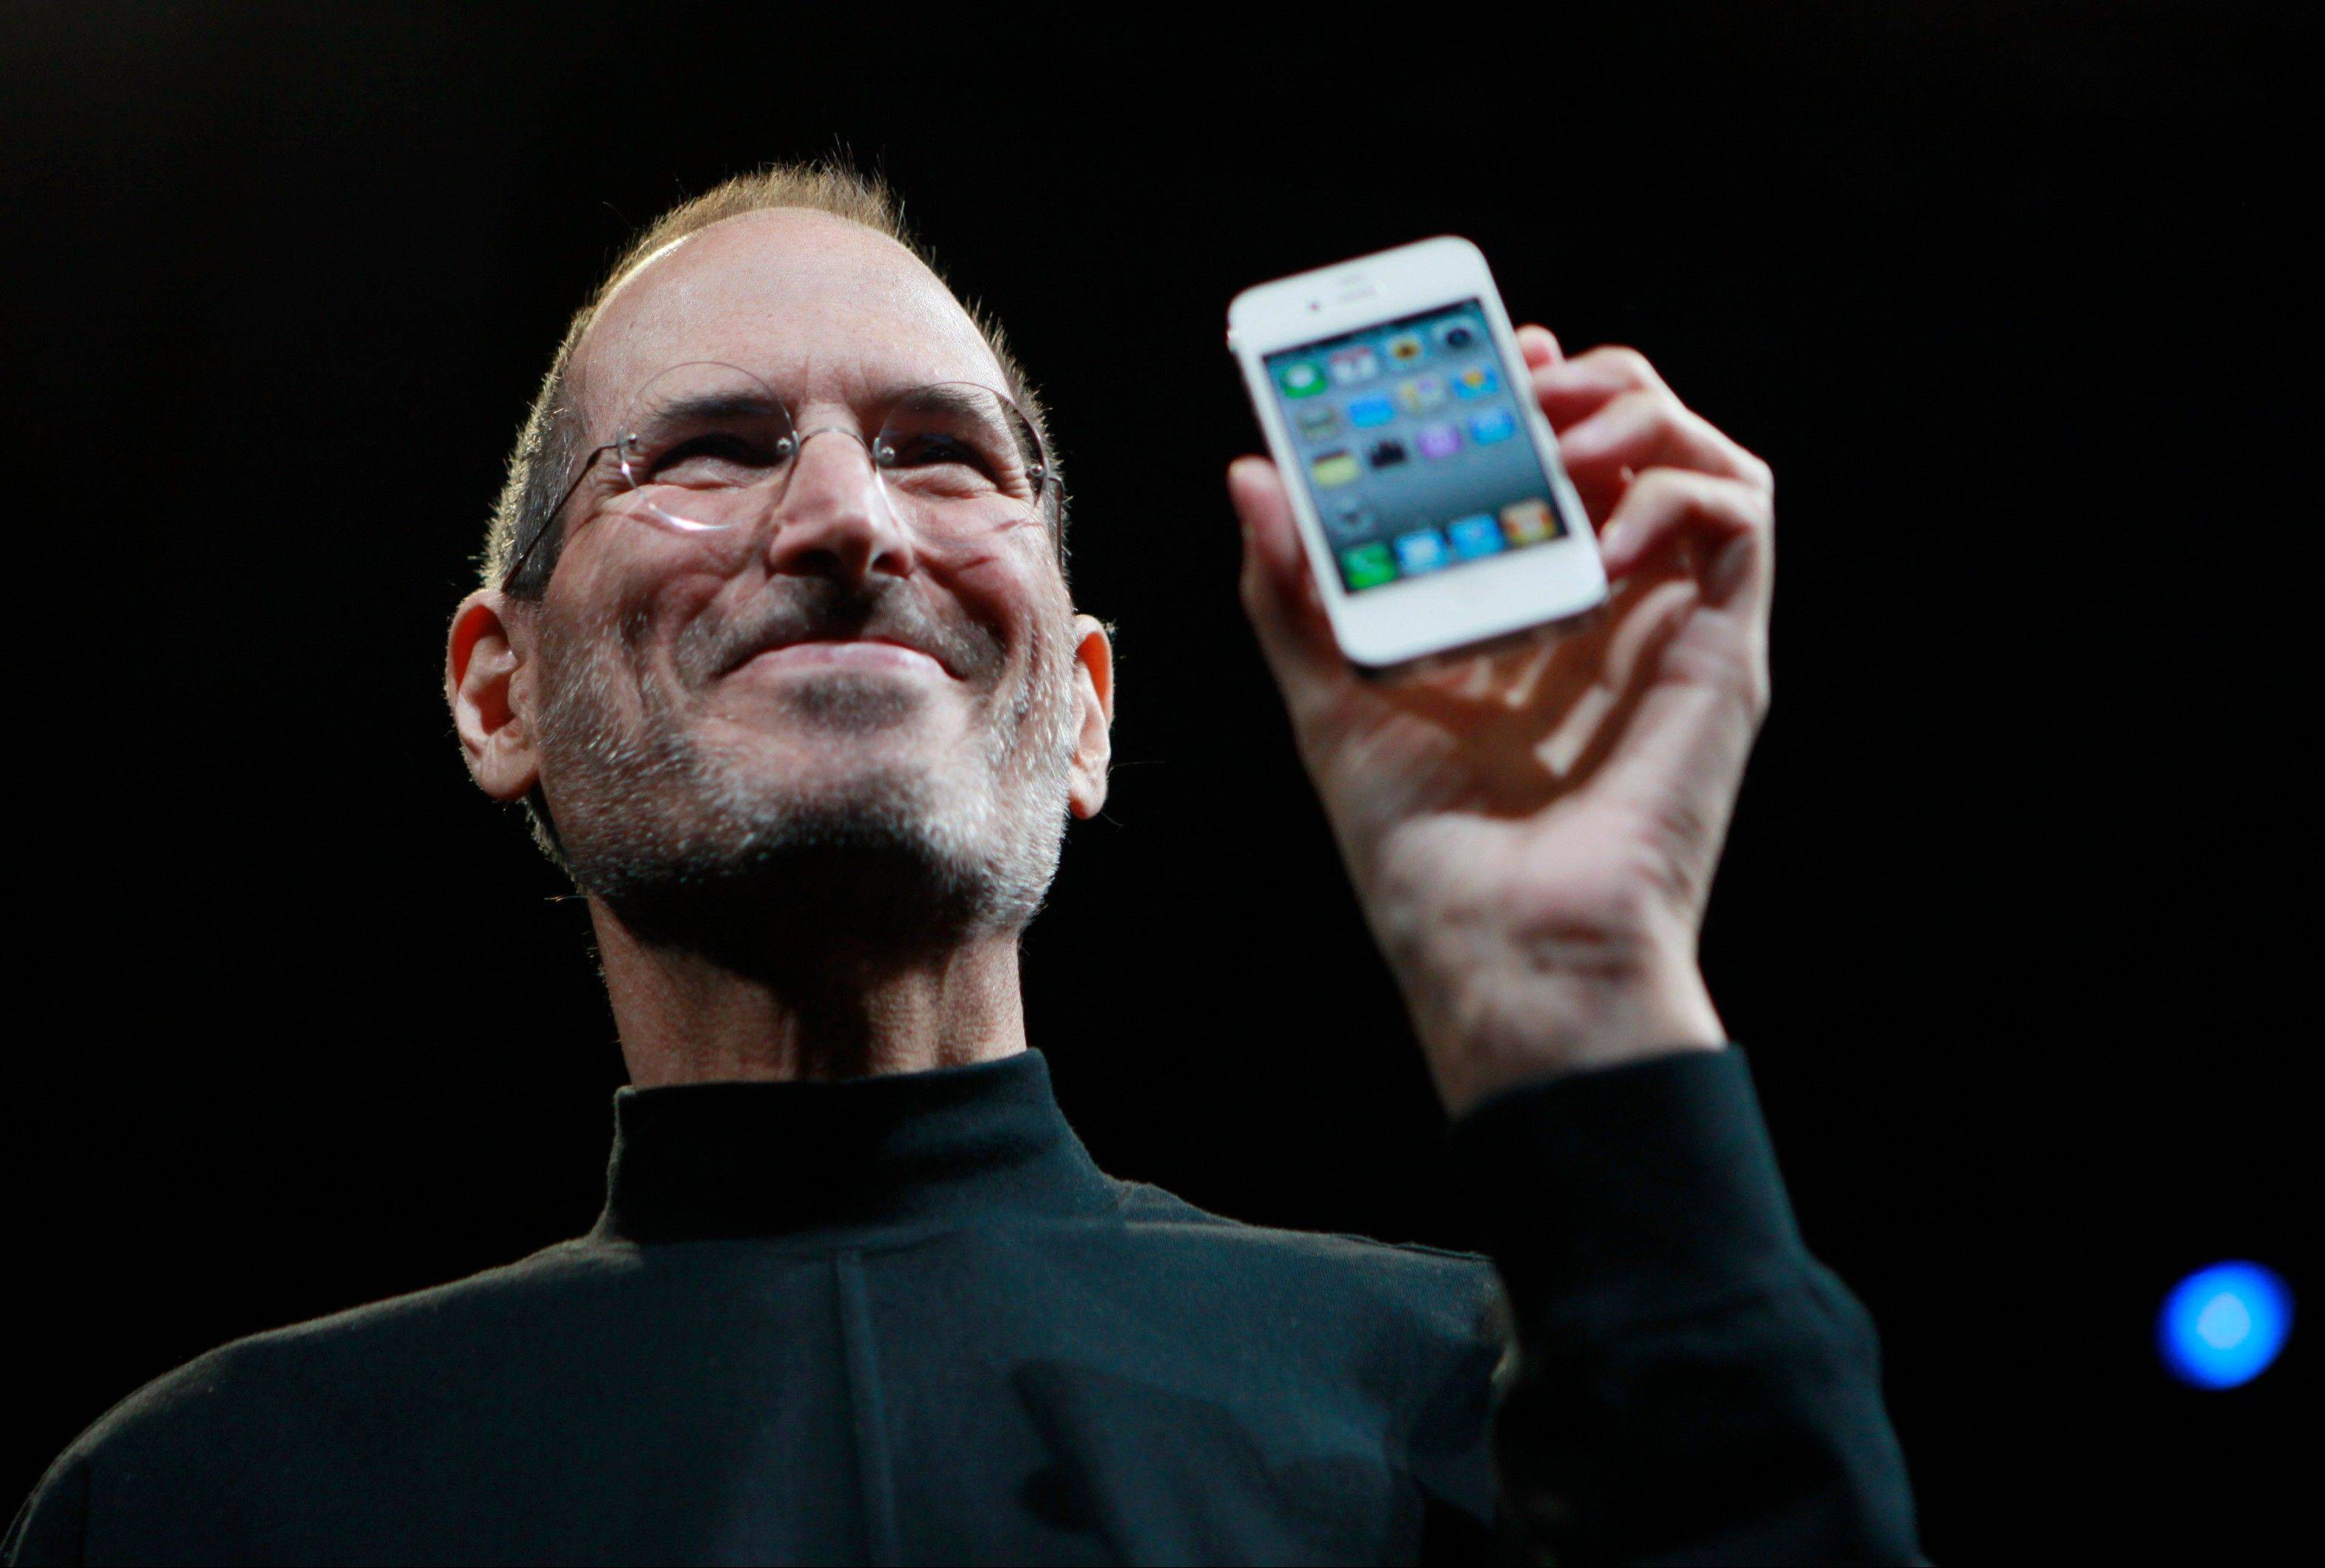 Apple CEO Steve Jobs, seen 2010, holds an iPhone at the Apple Worldwide Developers Conference in San Francisco. Two tech titans are squaring off in federal court this weeky in a closely watched trial over control of the worldwide smart phone and computer tablet markets.